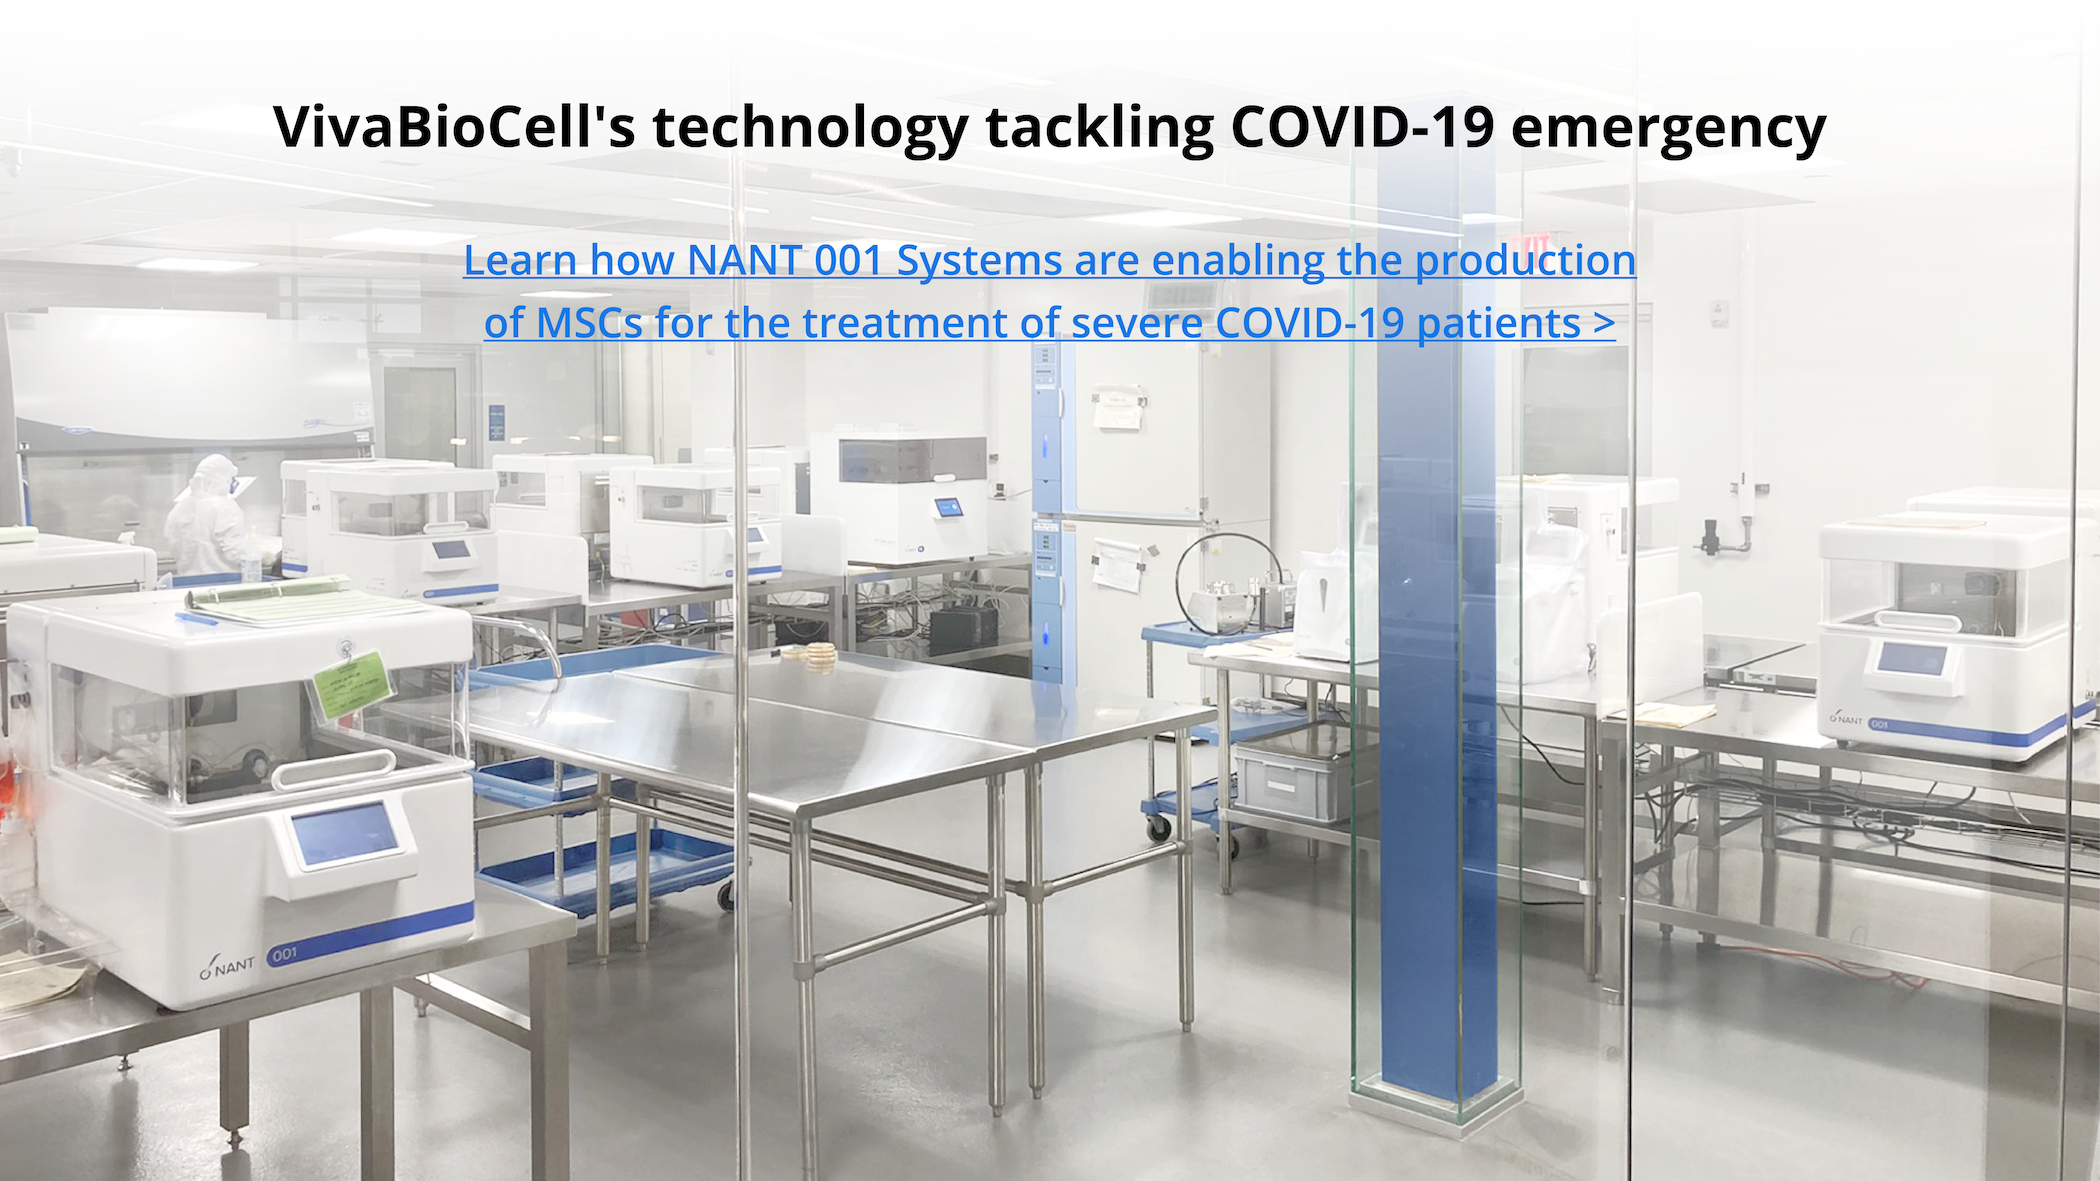 Scaling-up the production of BM.allo-MSC with NANT 001 System to treat severe COVID-19 patients